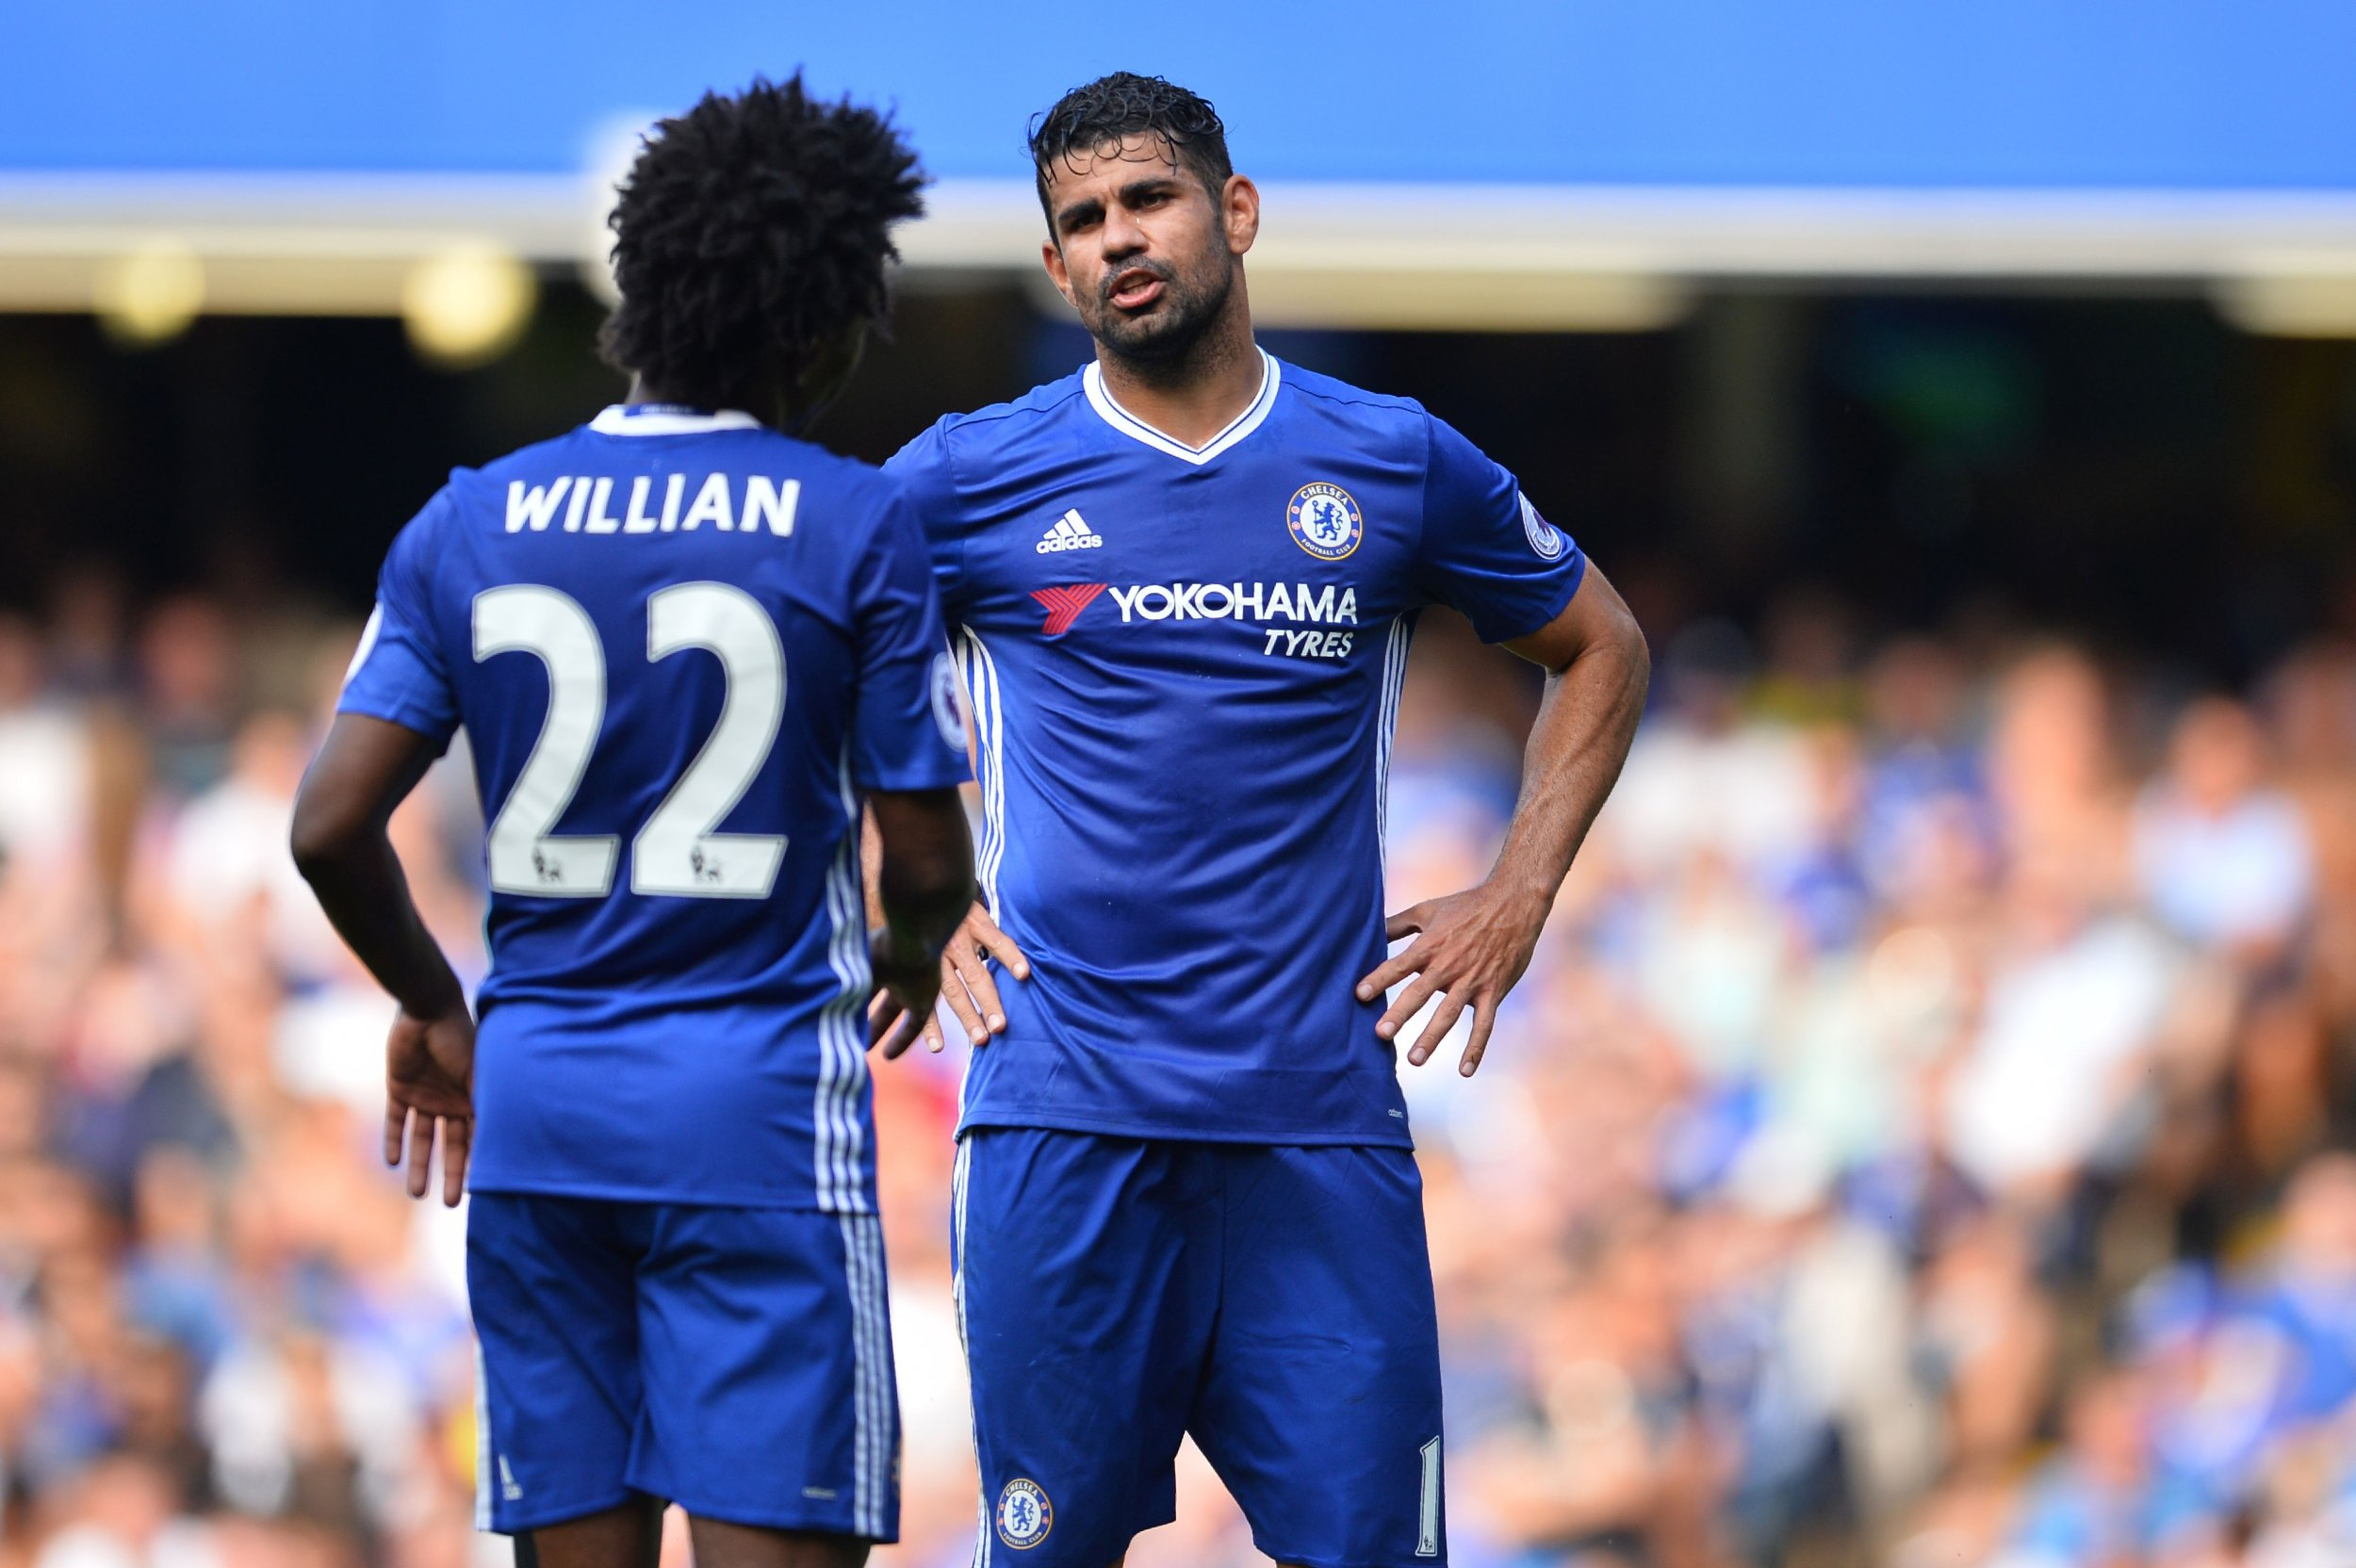 Chelsea teammates Willian, left, and Diego Costa.